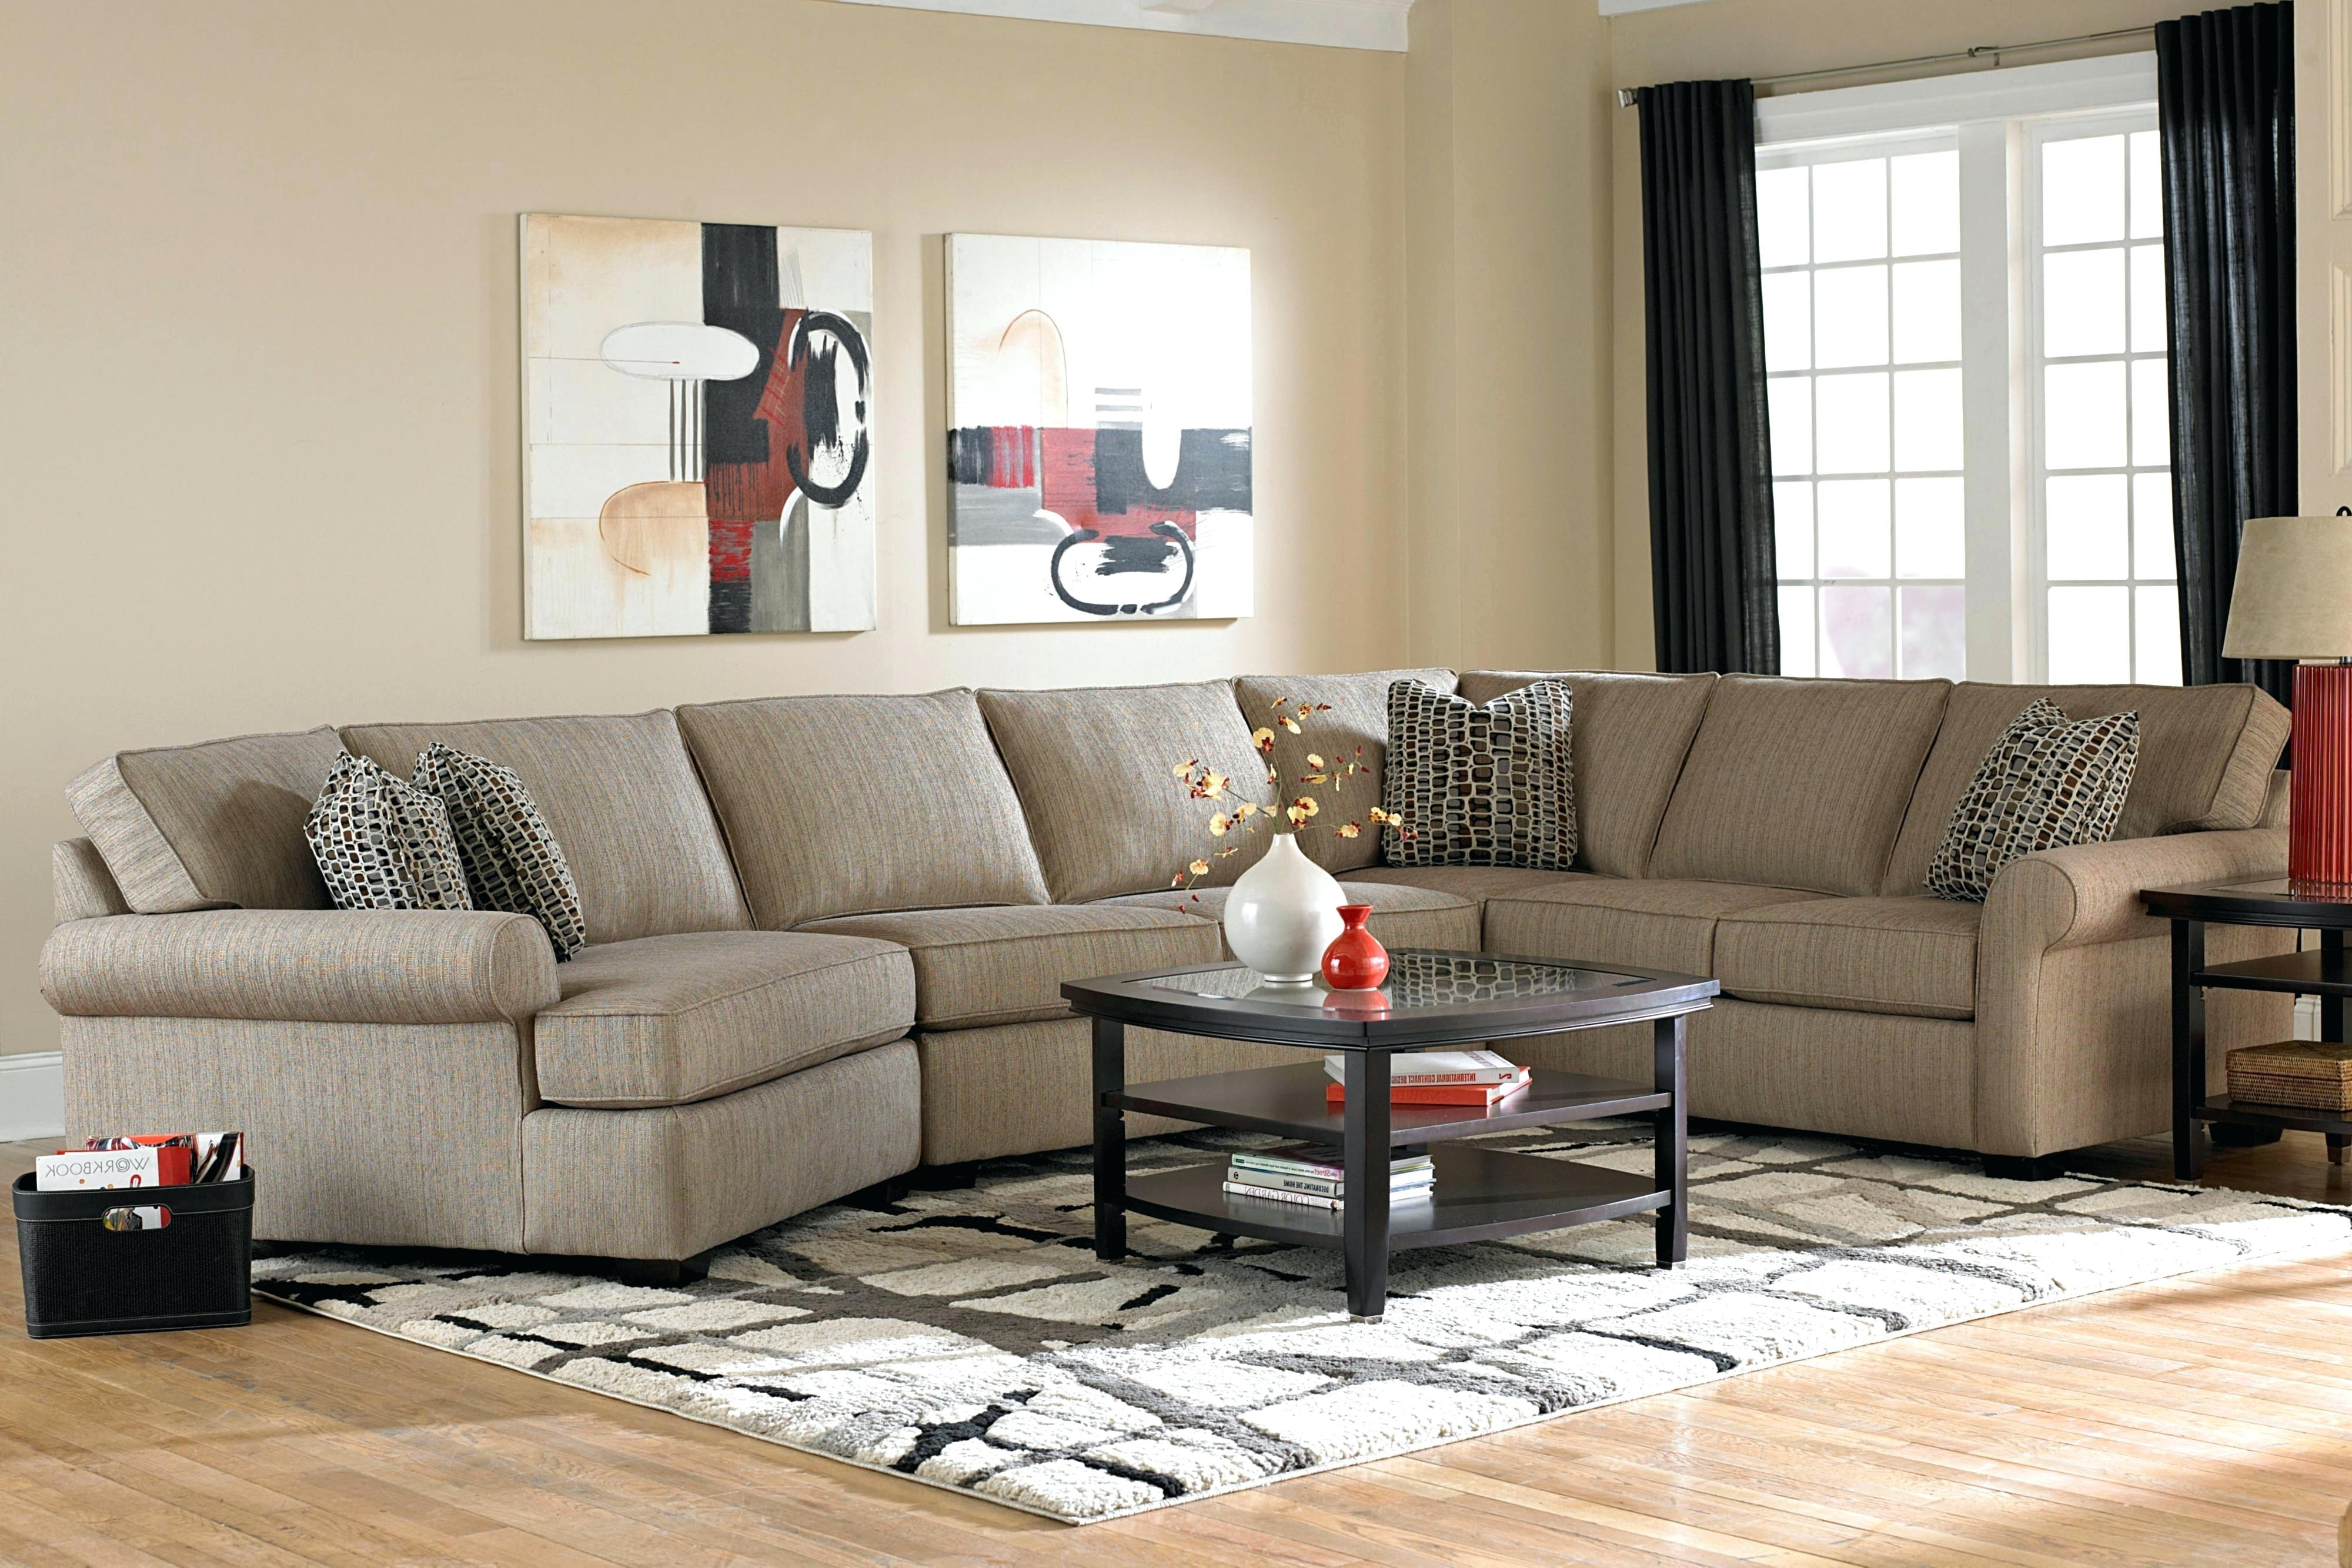 Sofa : Sectional Sofa Sales Near Me Sale Spring Hill Florida Pertaining To Favorite Michigan Sectional Sofas (View 10 of 15)